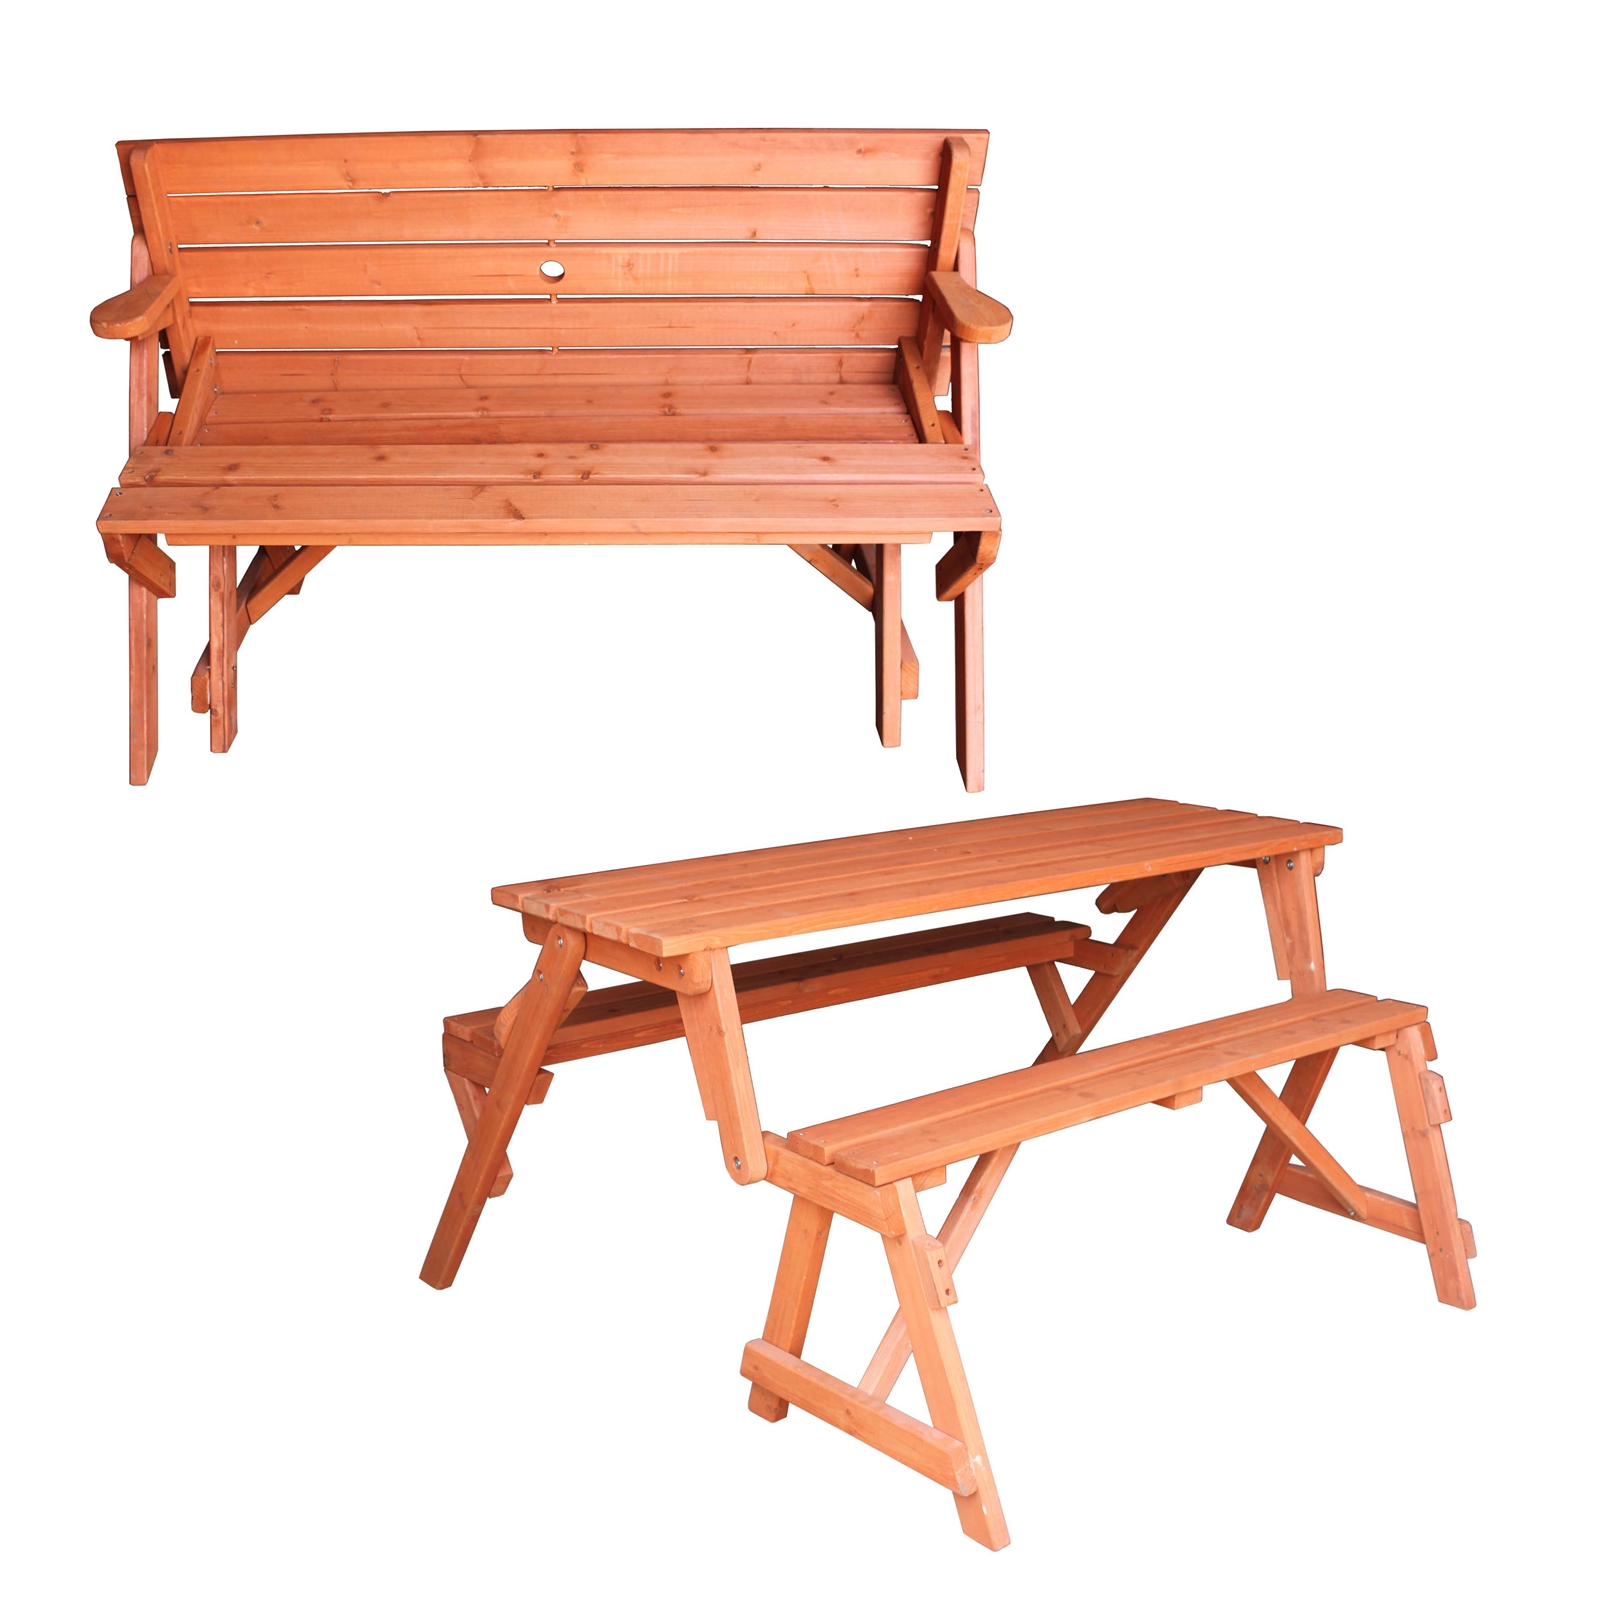 Foxhunter garden wooden folding picnic seat table bench 2 - Table picnic bois enfant ...